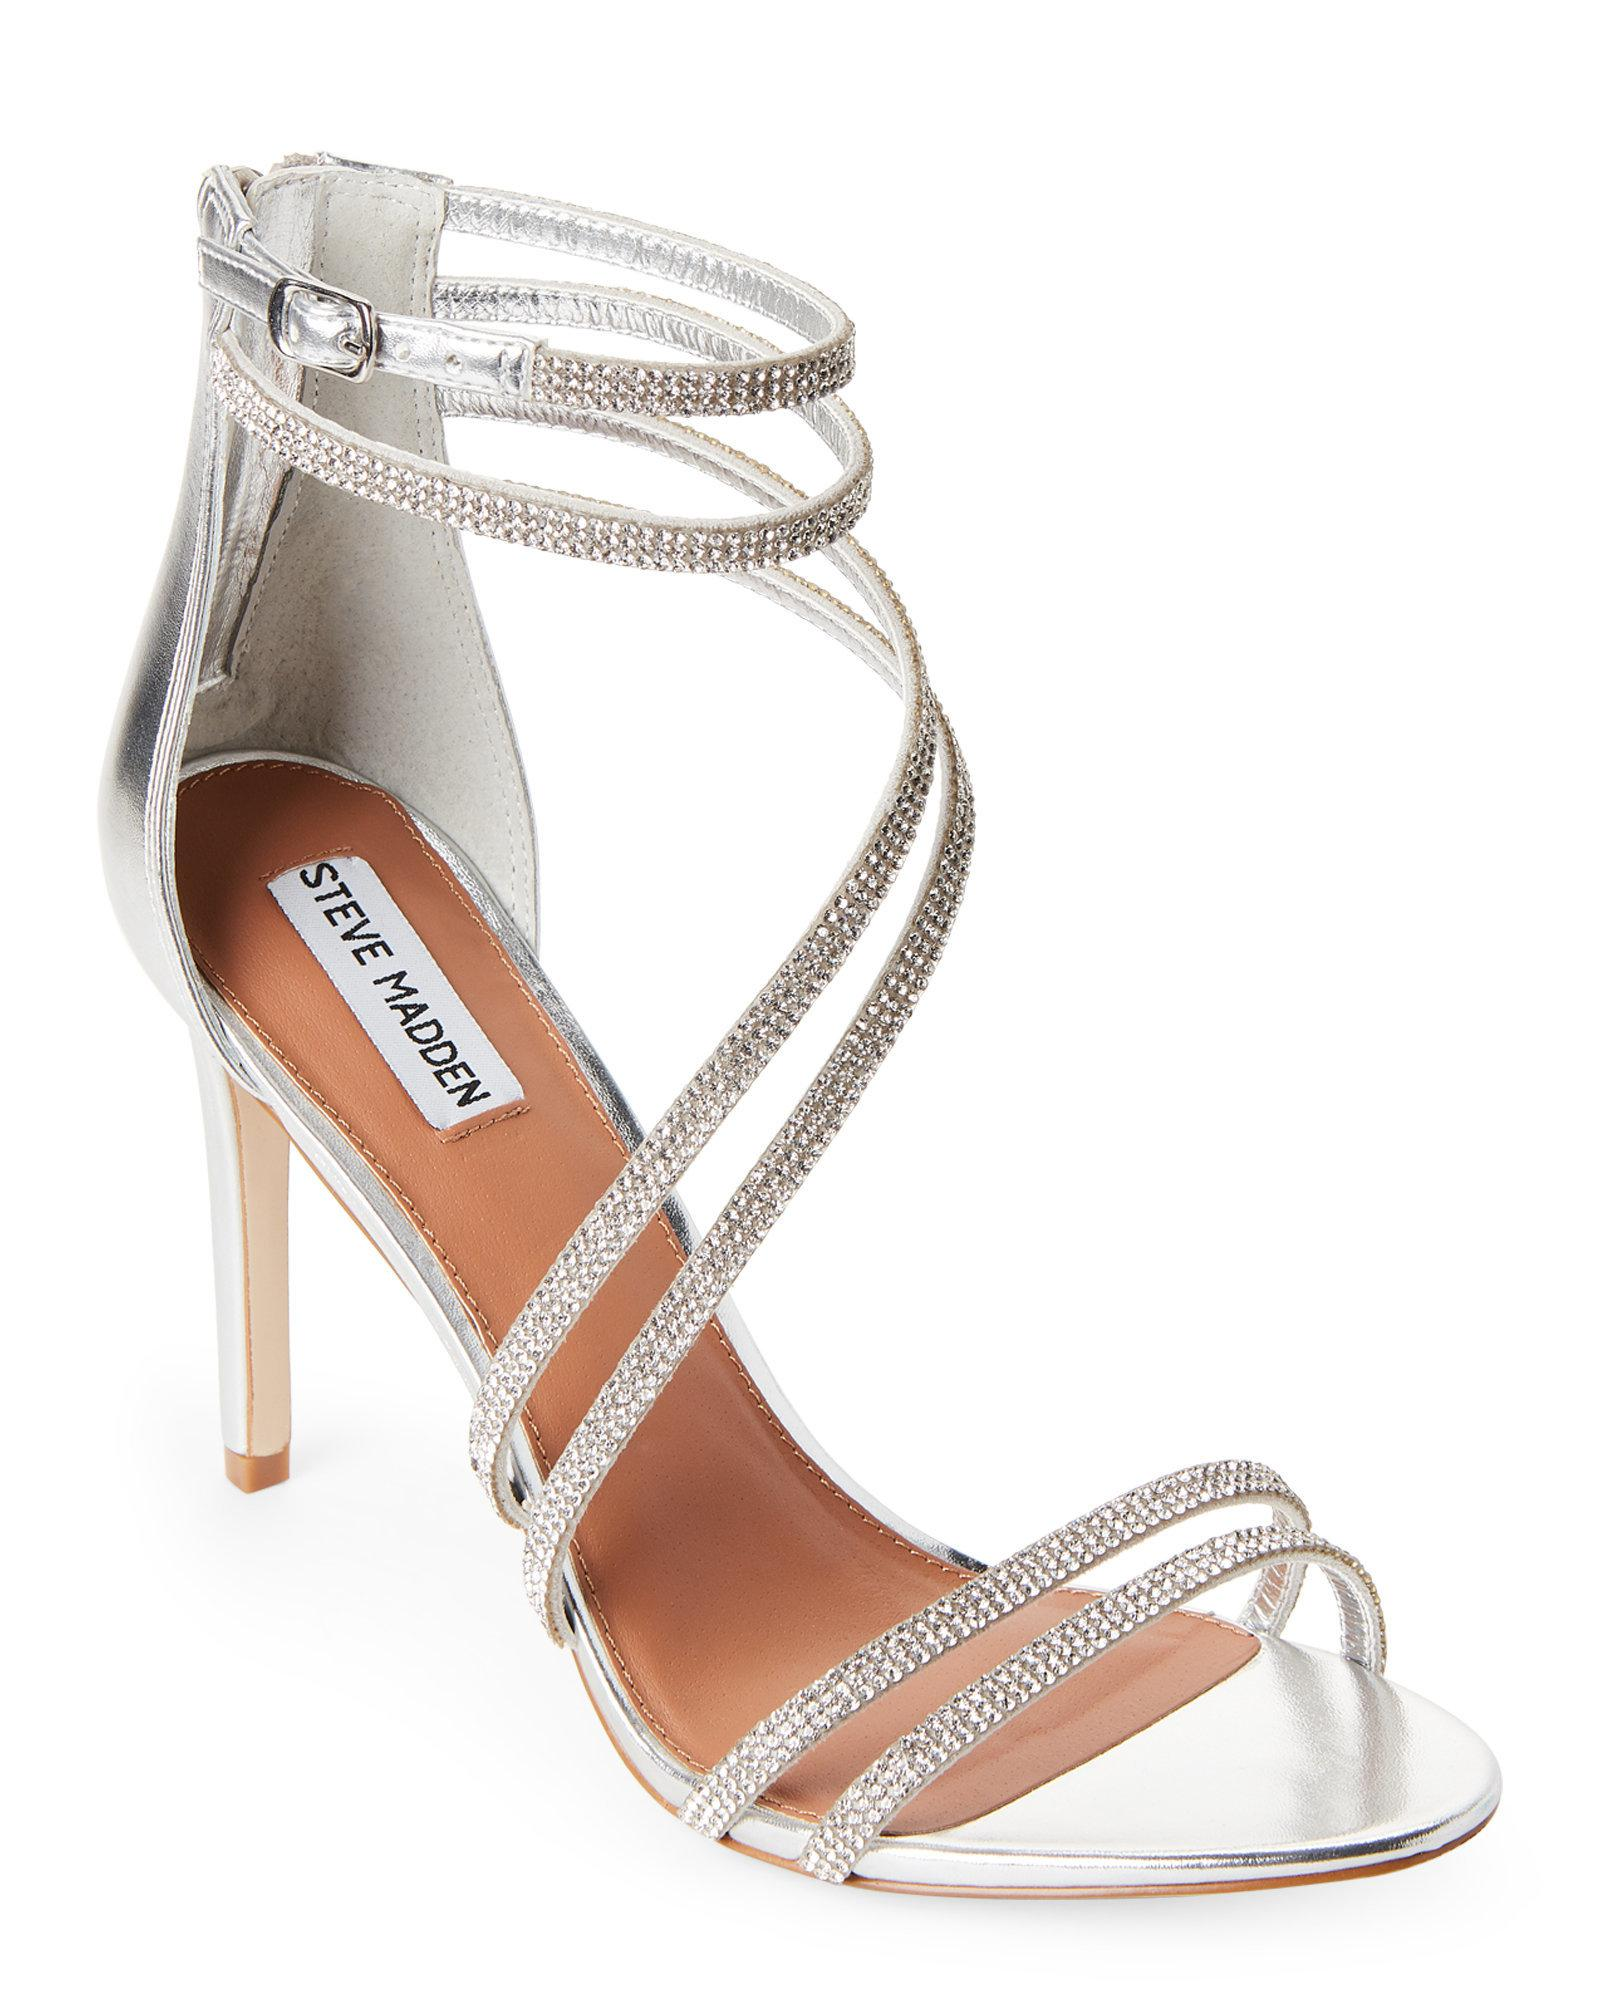 a30a972cbbdd Lyst - Steve Madden Pewter Fiffi Embellished Strappy Sandals in Metallic